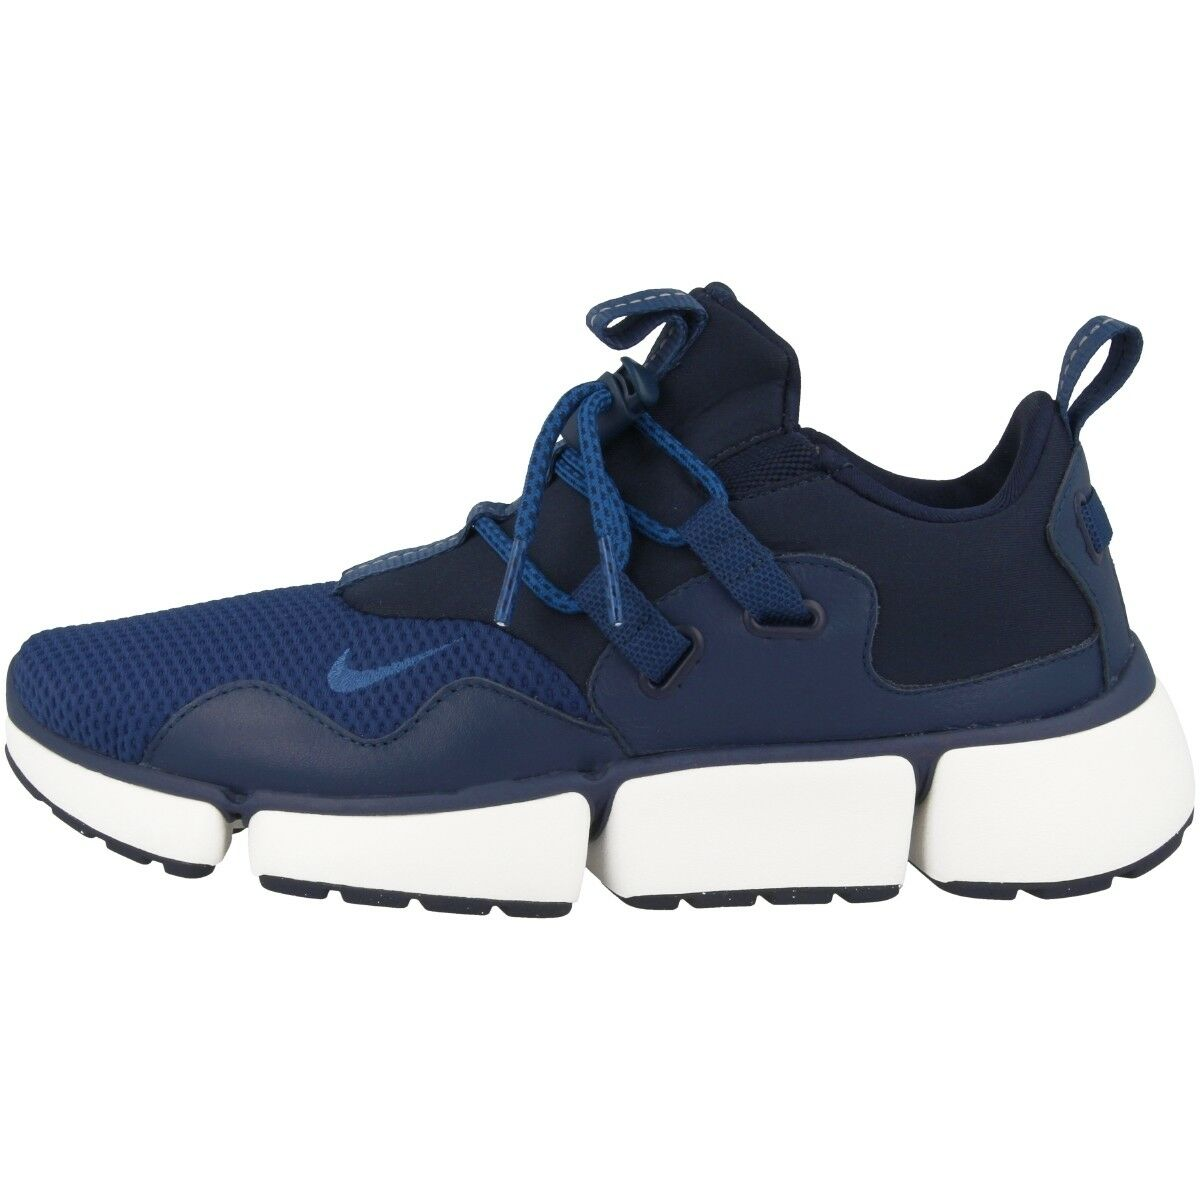 Nike Pocket Knife DM Shoes Dynamic Motion Sneakers Running Shoes Blue 898033-401